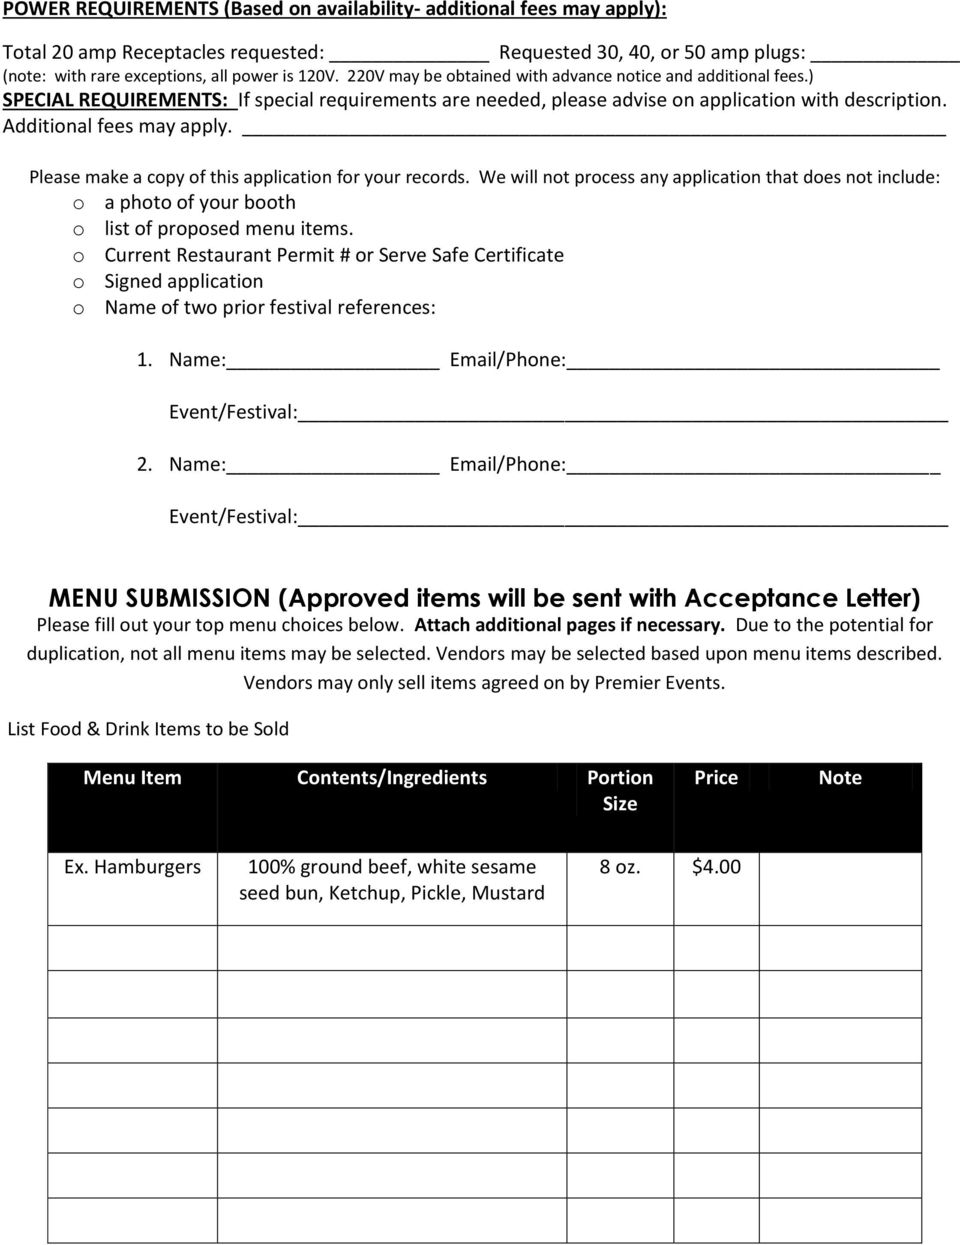 Please make a copy of this application for your records. We will not process any application that does not include: o a photo of your booth o list of proposed menu items.